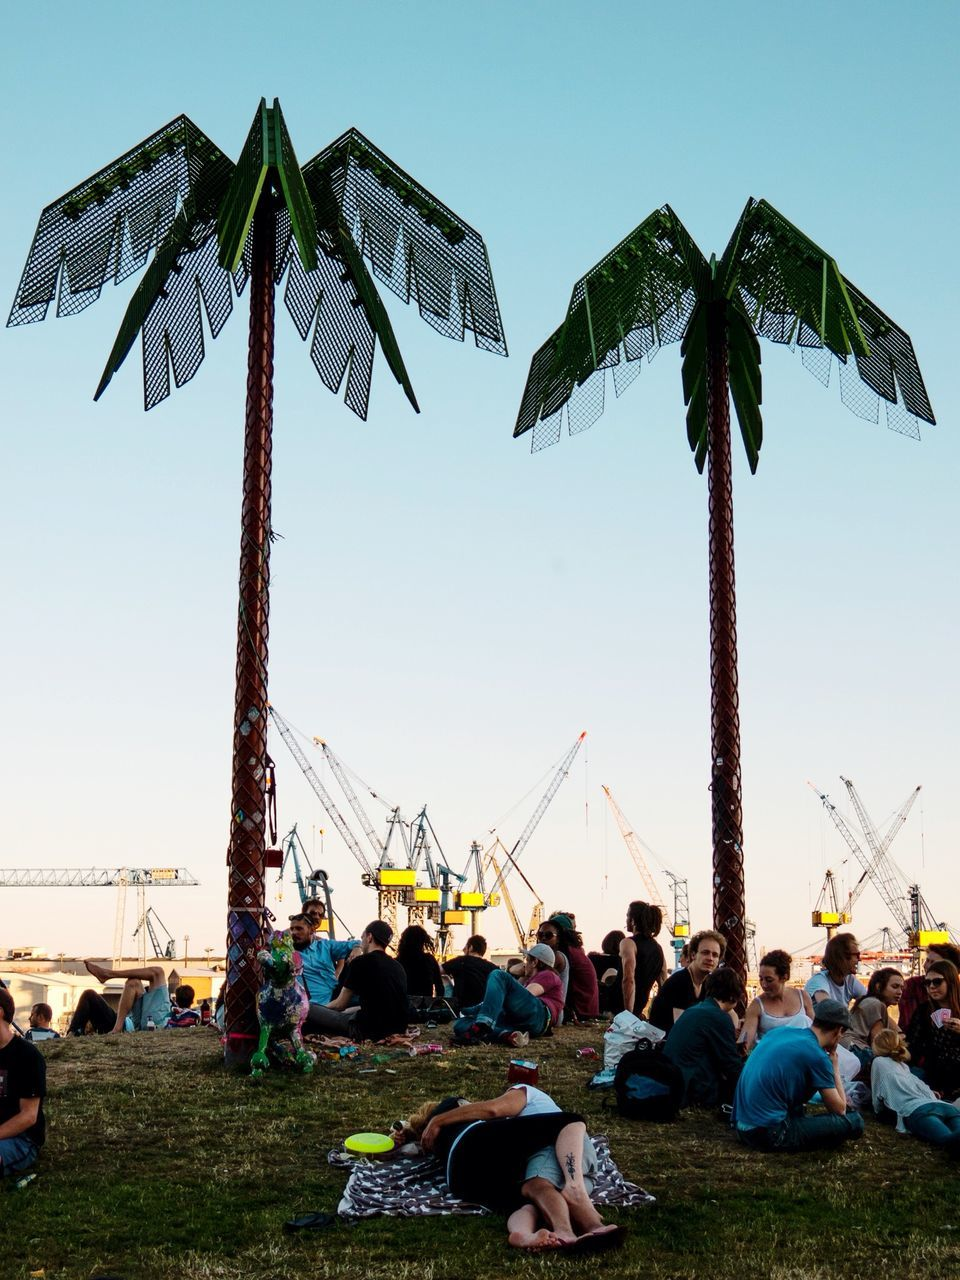 large group of people, enjoyment, clear sky, leisure activity, real people, women, men, palm tree, built structure, lifestyles, sky, outdoors, vacations, day, arts culture and entertainment, tree, blue, relaxation, togetherness, nature, grass, architecture, crowd, people